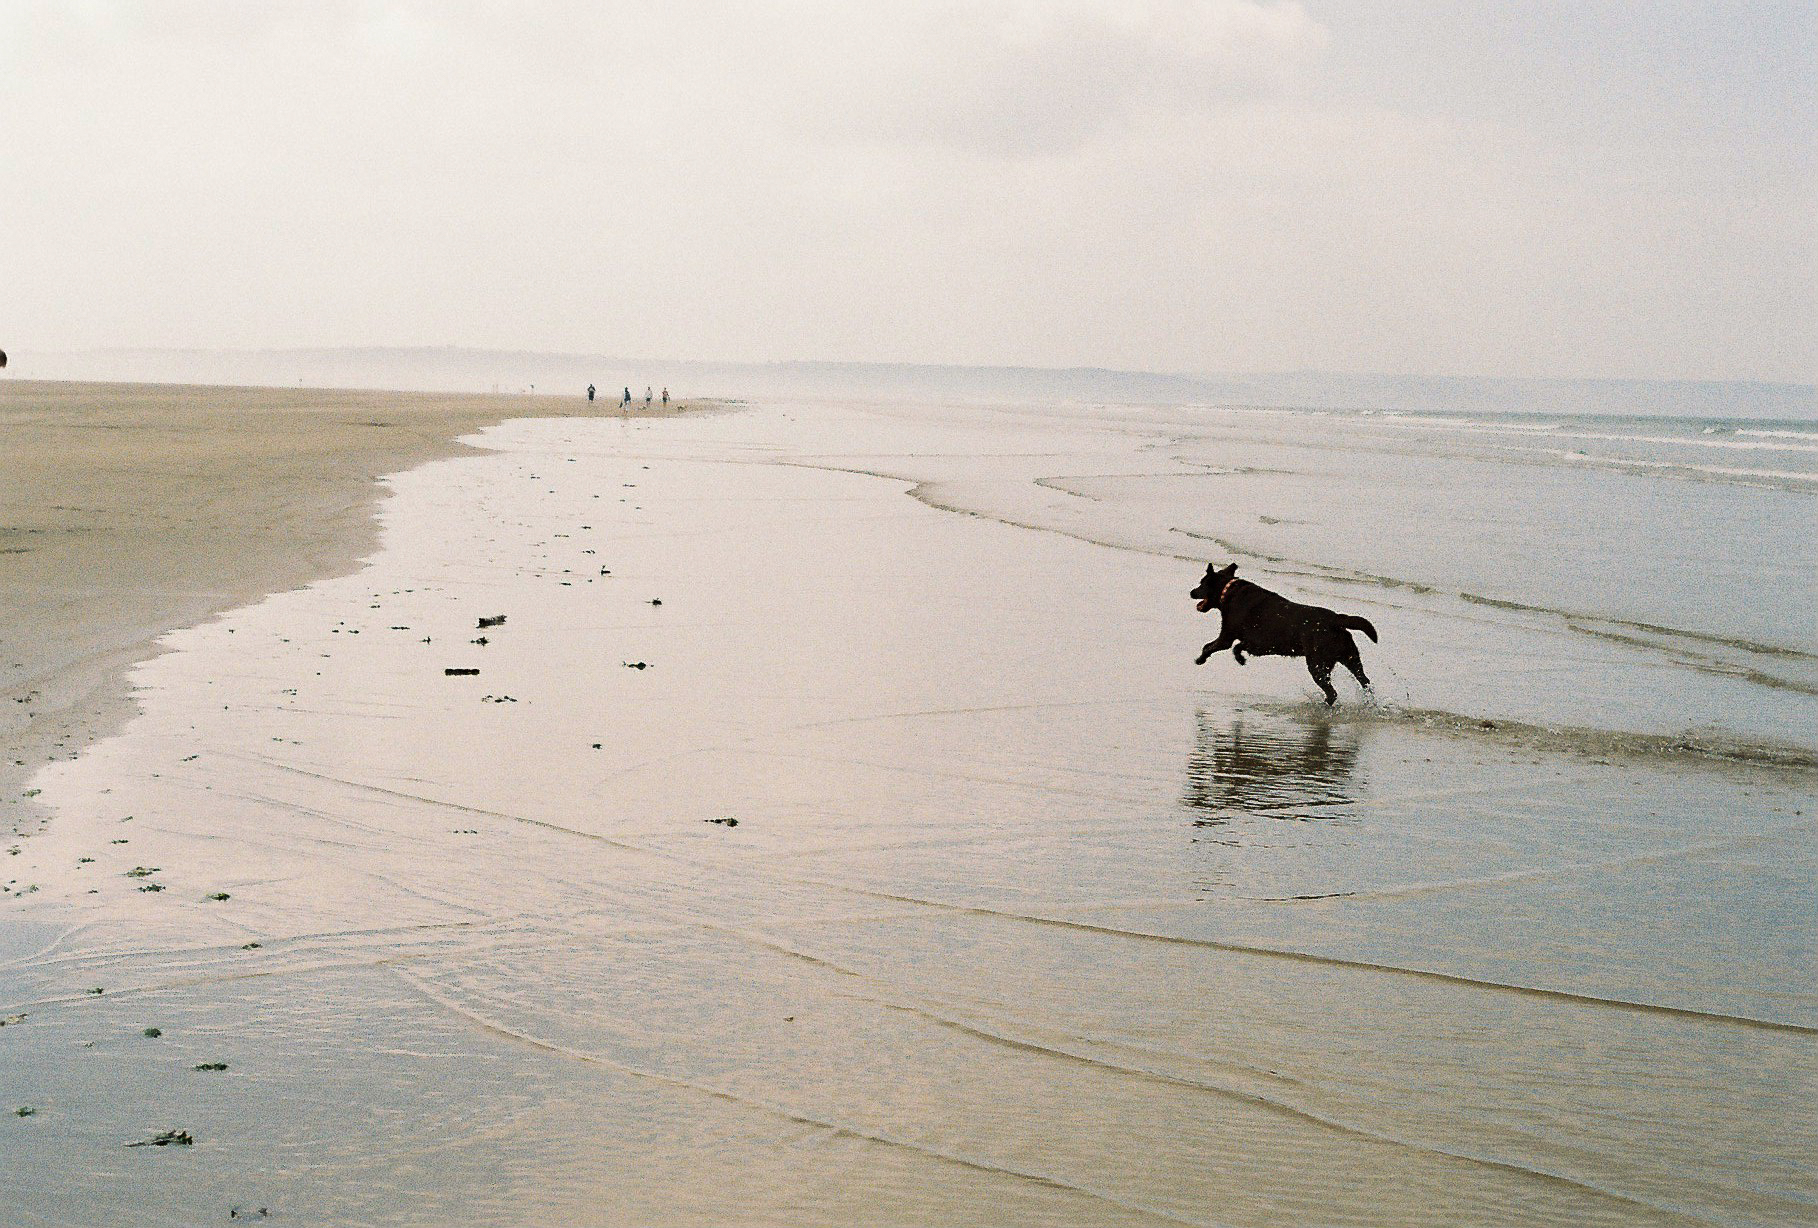 Saunton Sands, Devon, UK, May 2018 - Pentax K1000 Kodak Colour 250